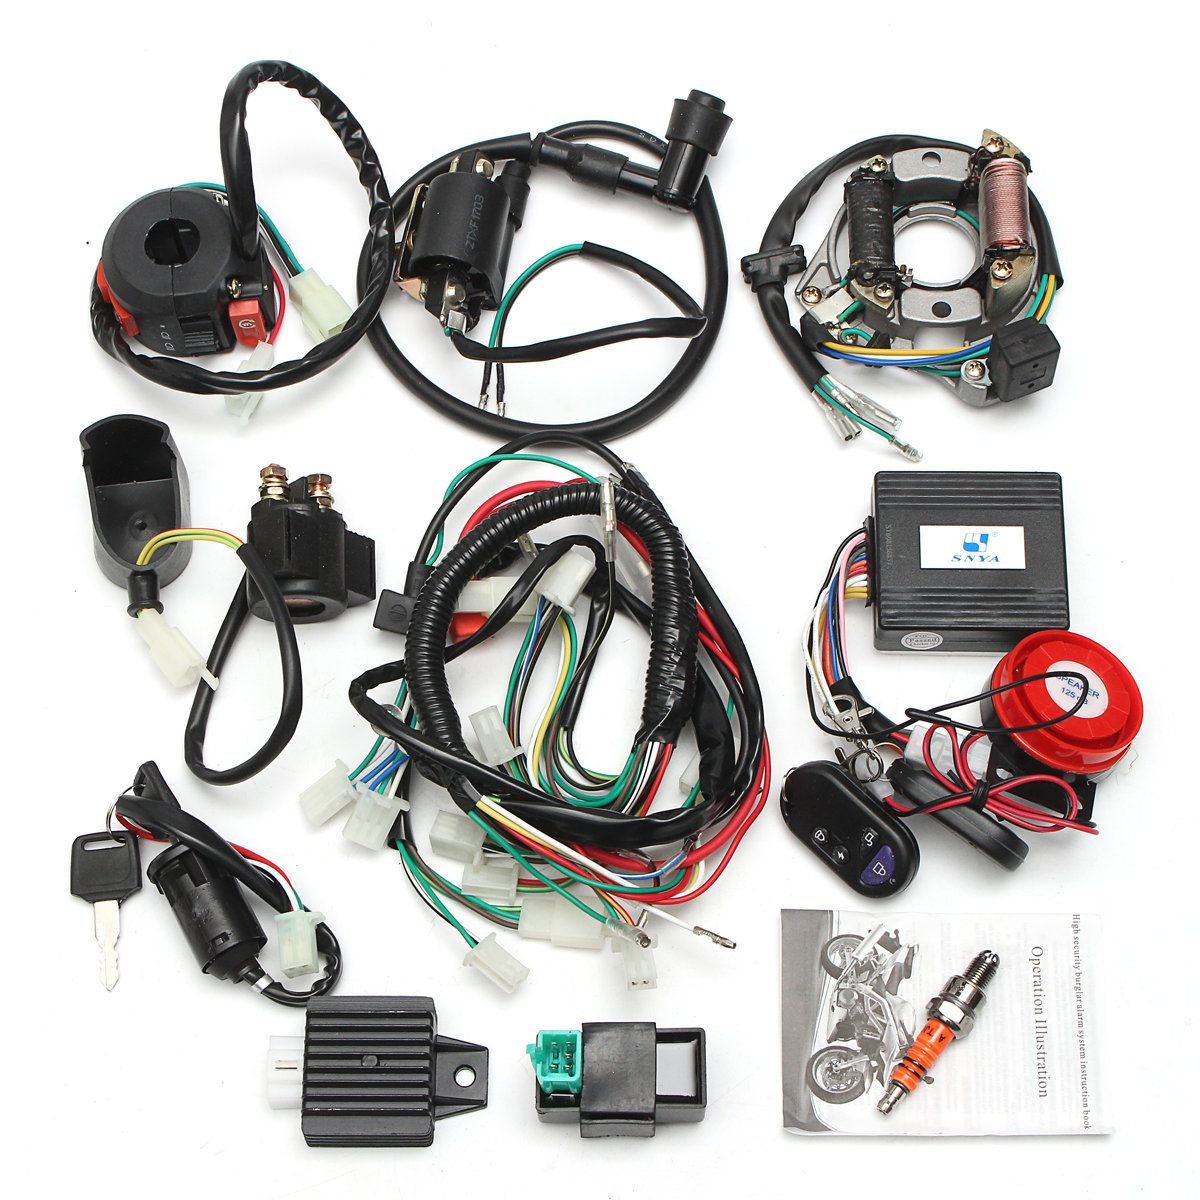 medium resolution of alarm system cdi wiring harness remote start switch high security for electric